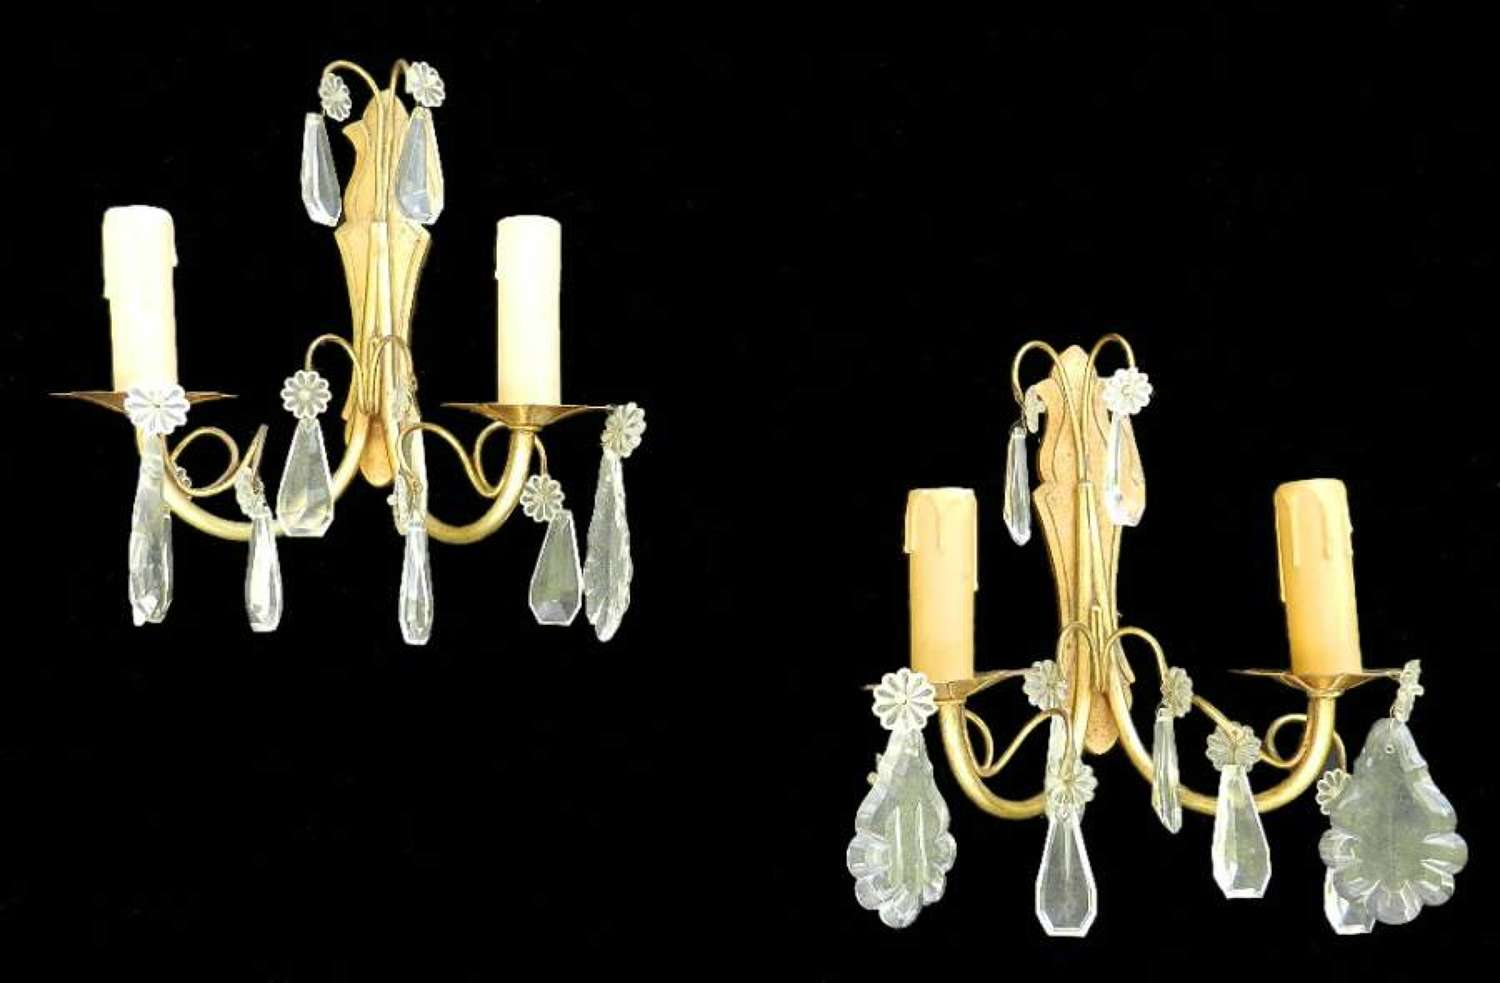 Pair of French Wall Lights Crystal Drop Vintage Appliques